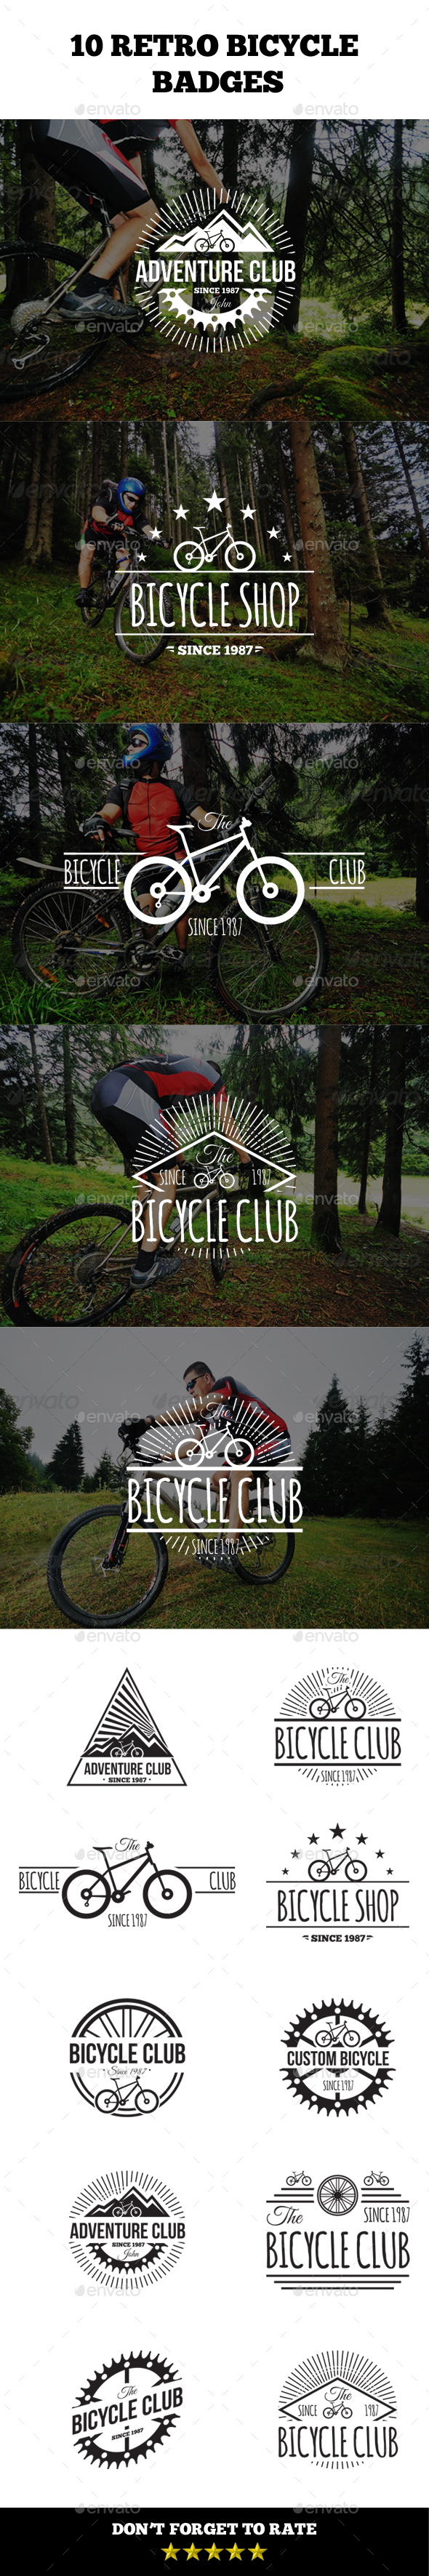 Retro Bicycle Badges - Badges & Stickers Web Elements